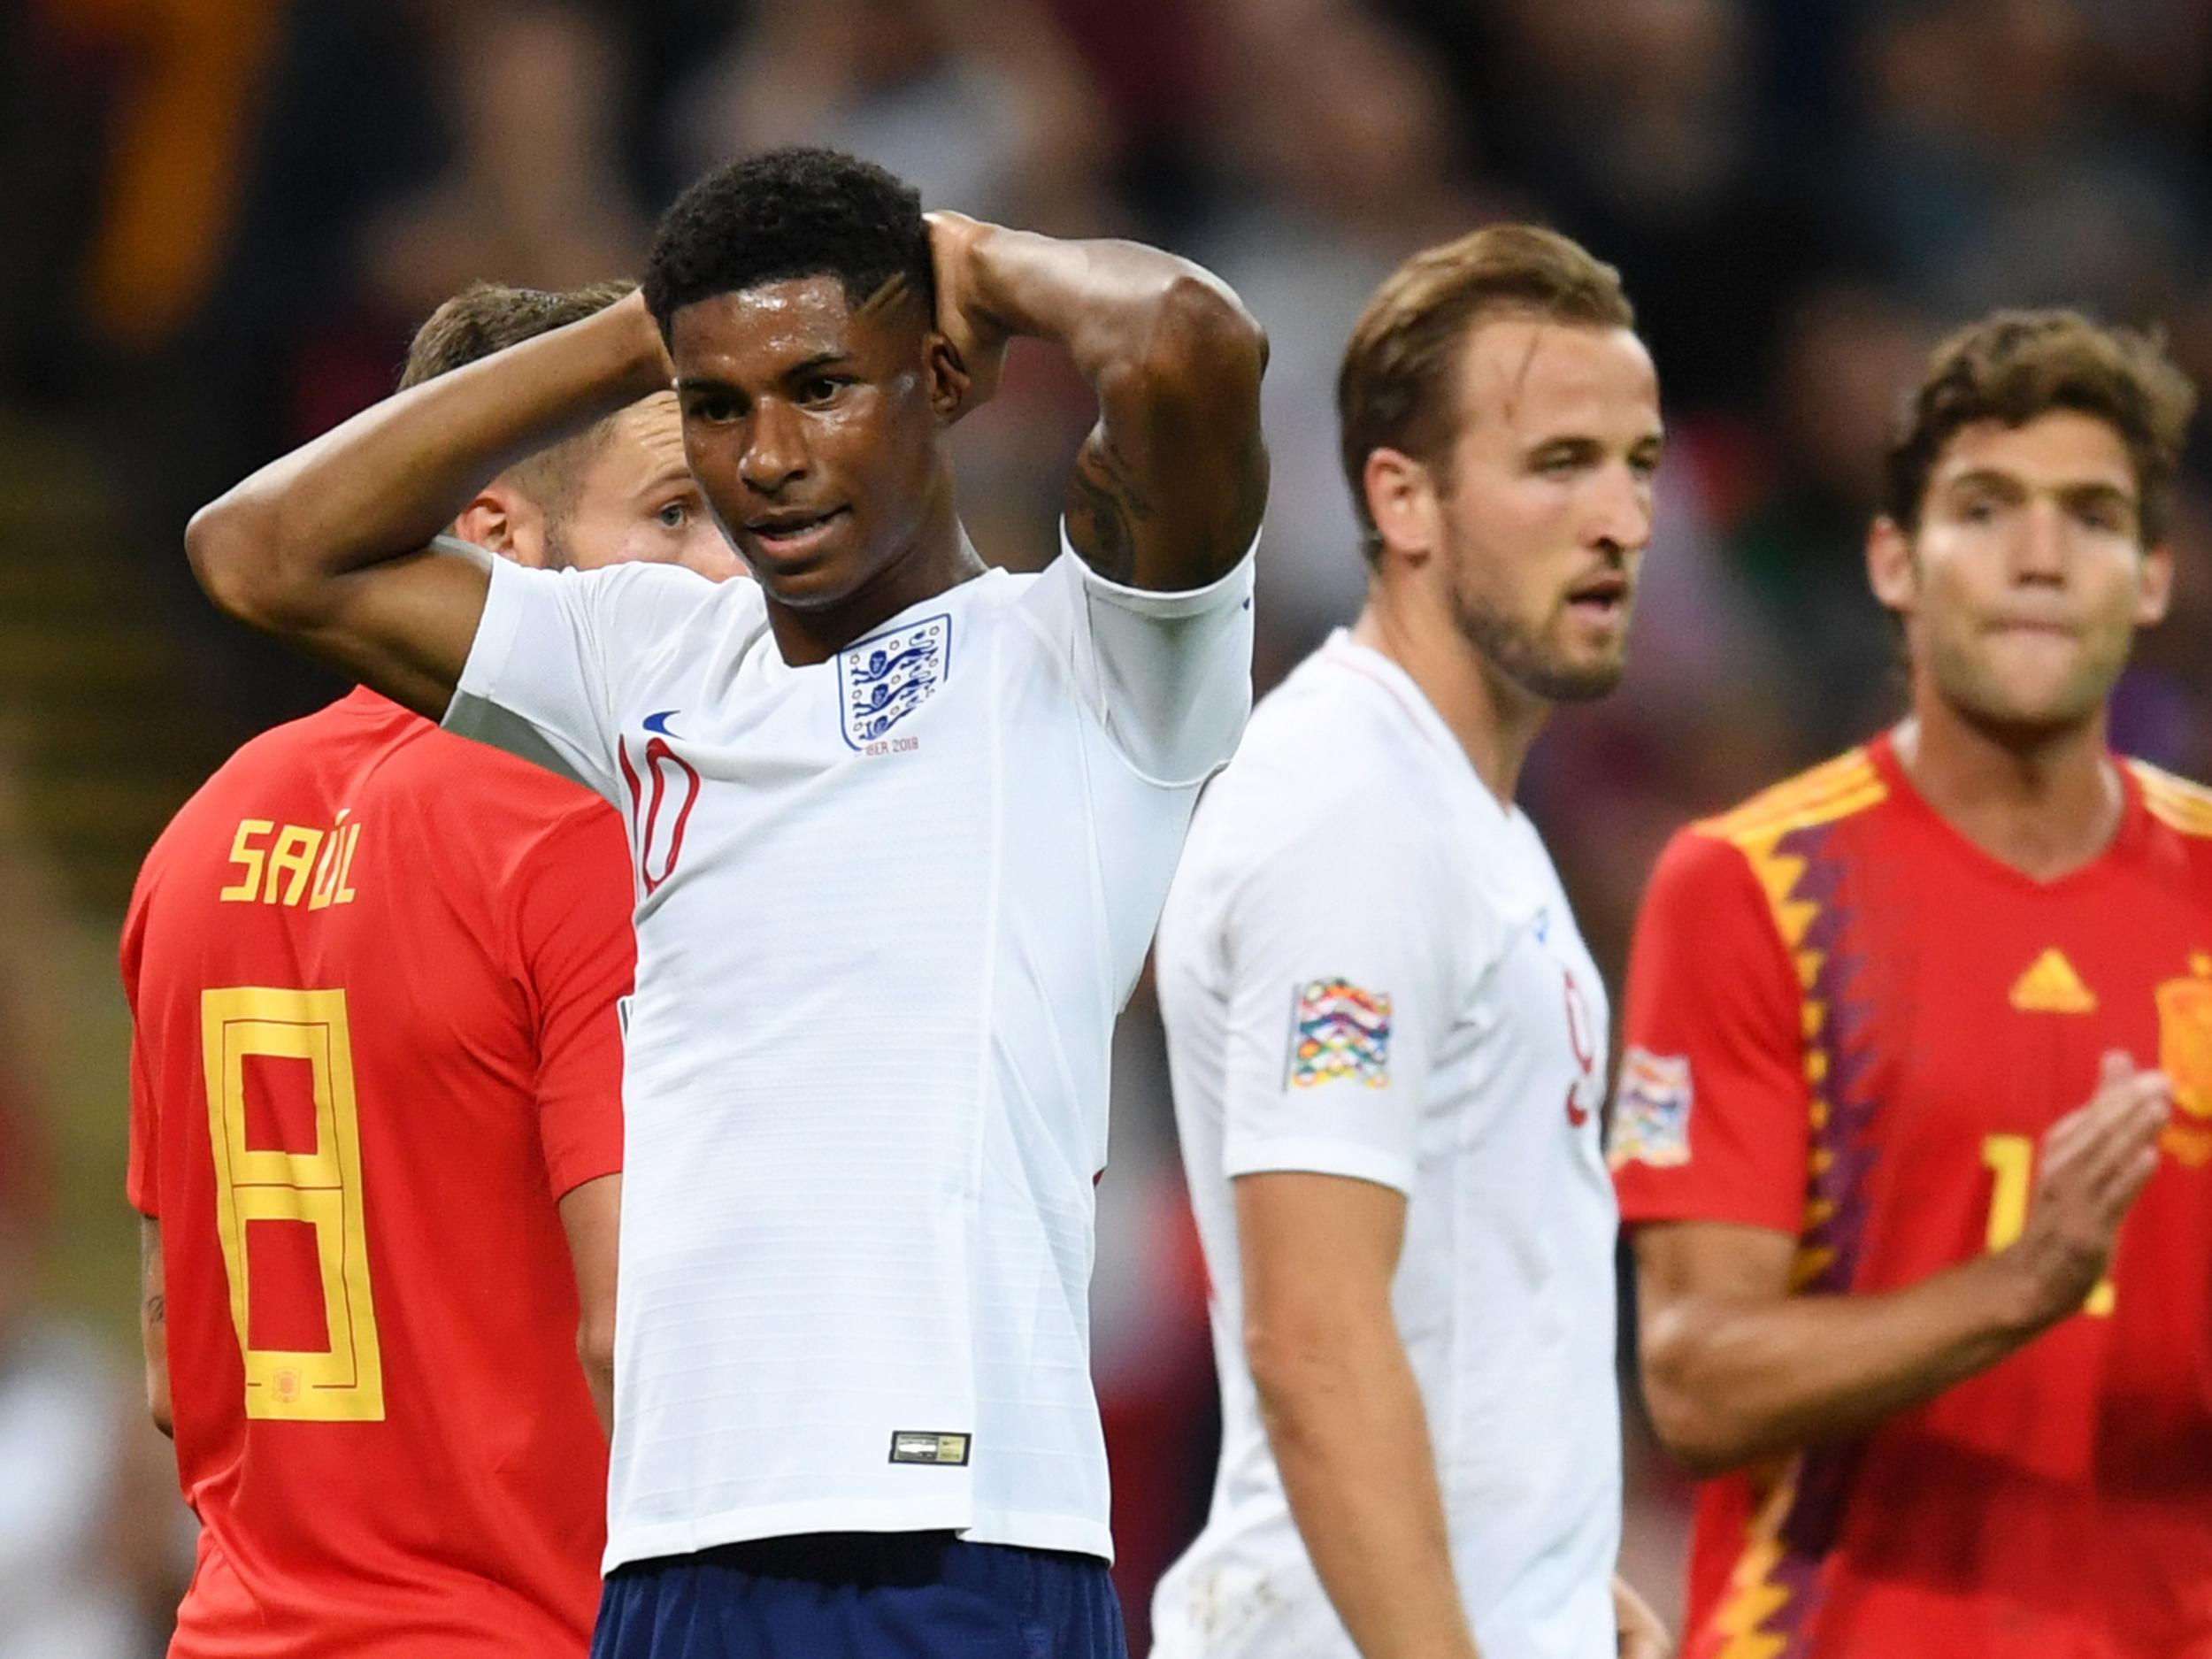 d47f3613ad6 England vs Spain: Luke Shaw and Marcus Rashford impress as familiar World  Cup shortcomings haunt Three Lions | The Independent